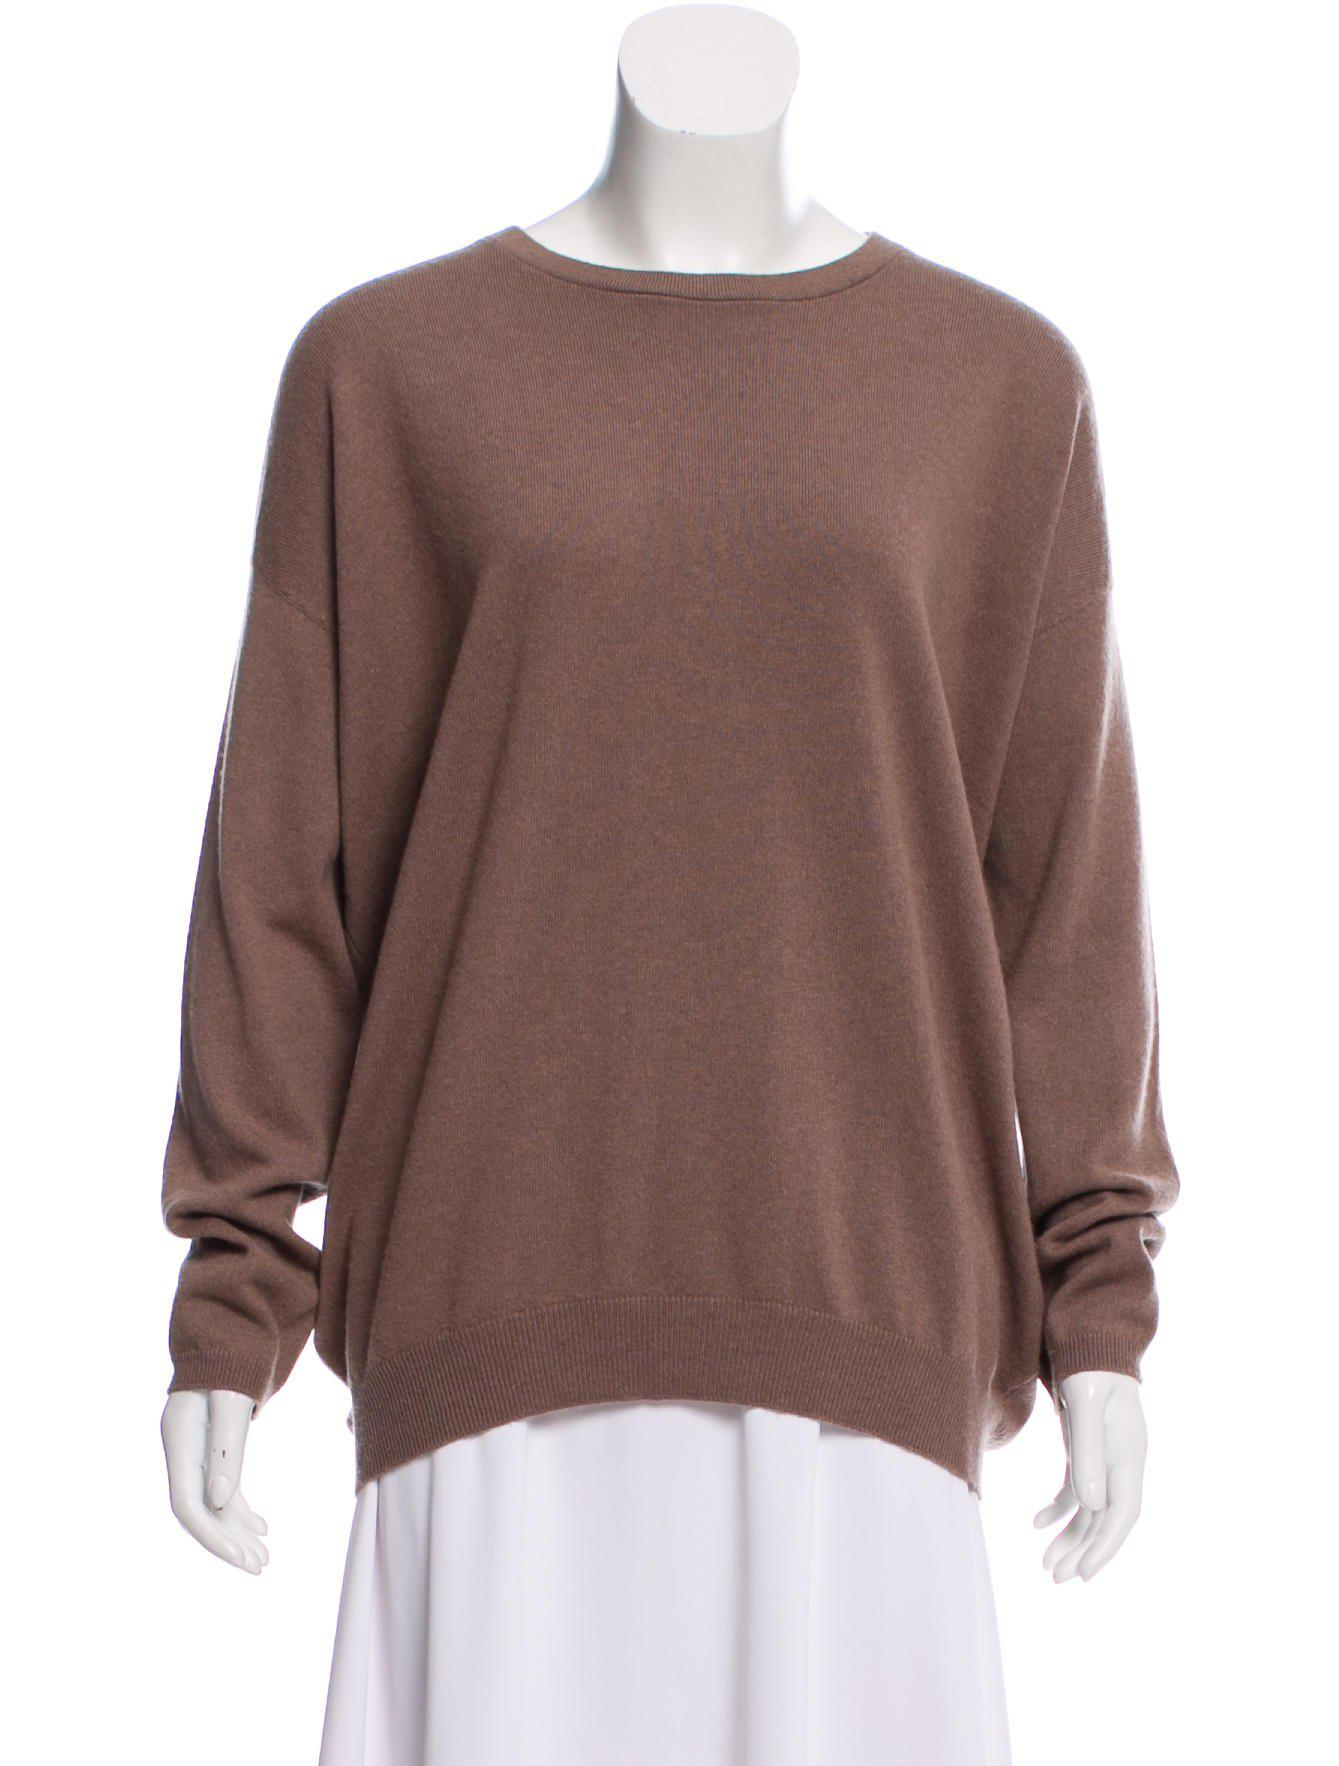 76599f7309 Lyst - Brunello Cucinelli Cashmere Long Sleeve Sweater in Brown